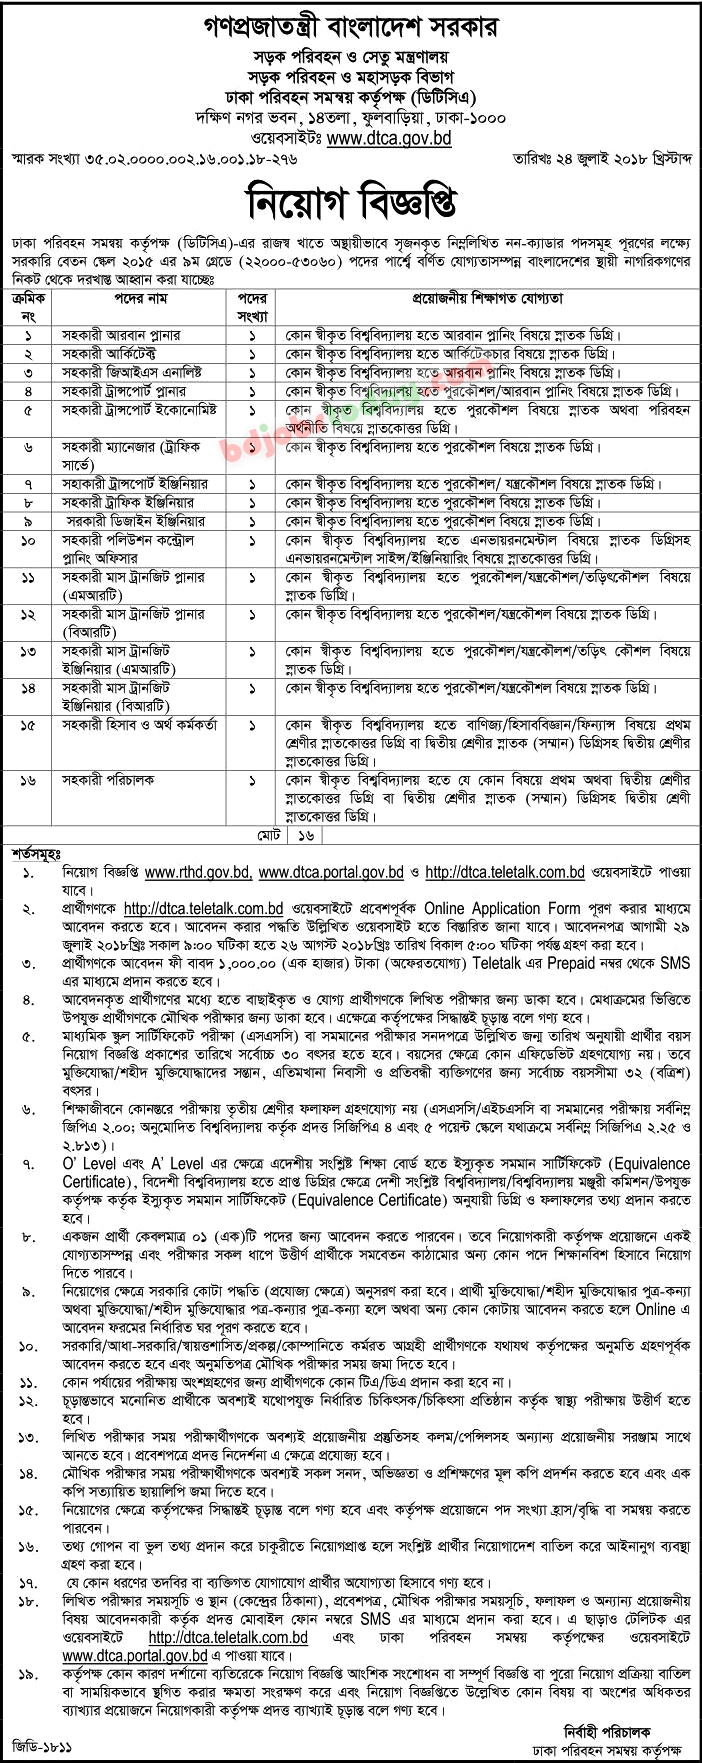 Dhaka Transport Coordination Authority-DTCA jobs